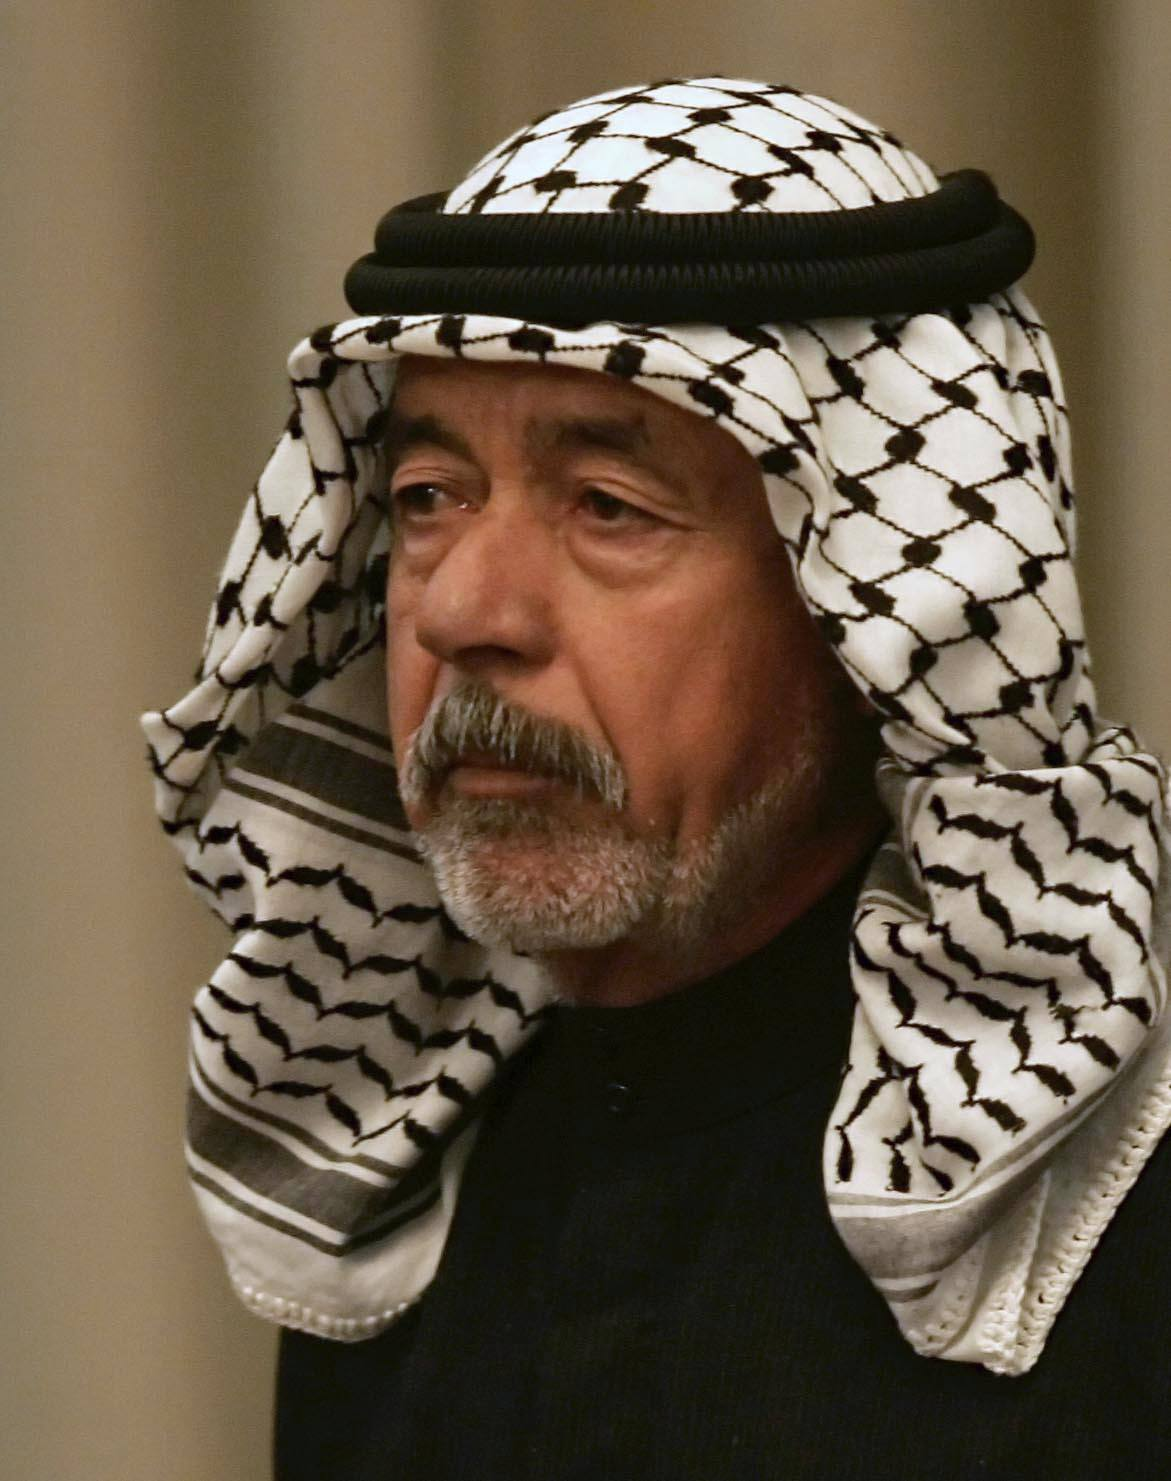 Hassan al-Majid is seen in this January 8, 2007 file photo.